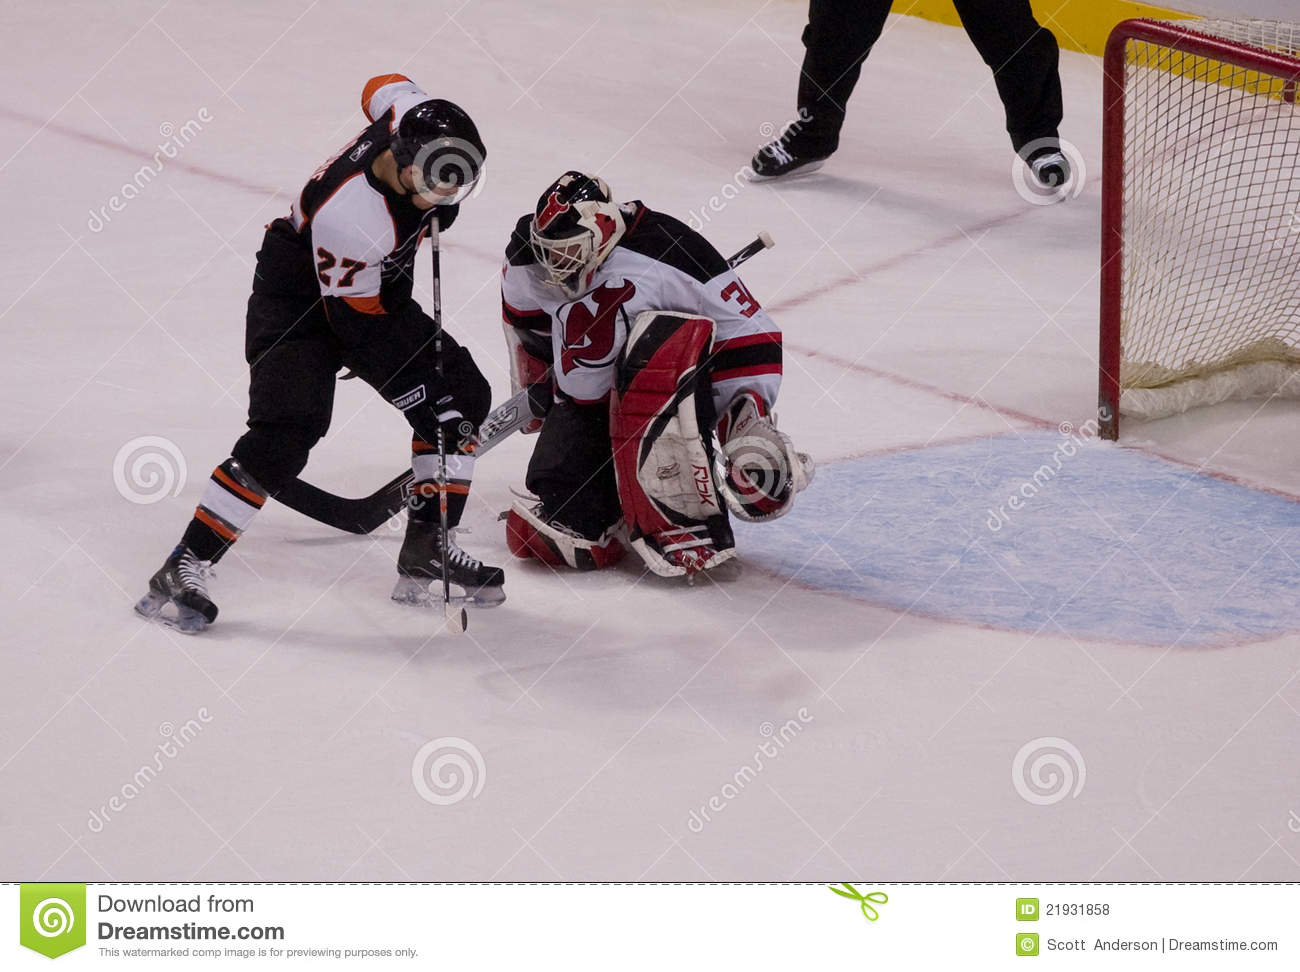 new concept 9aaf2 4ca7f Broduer editorial stock photo. Image of flyers, devils ...